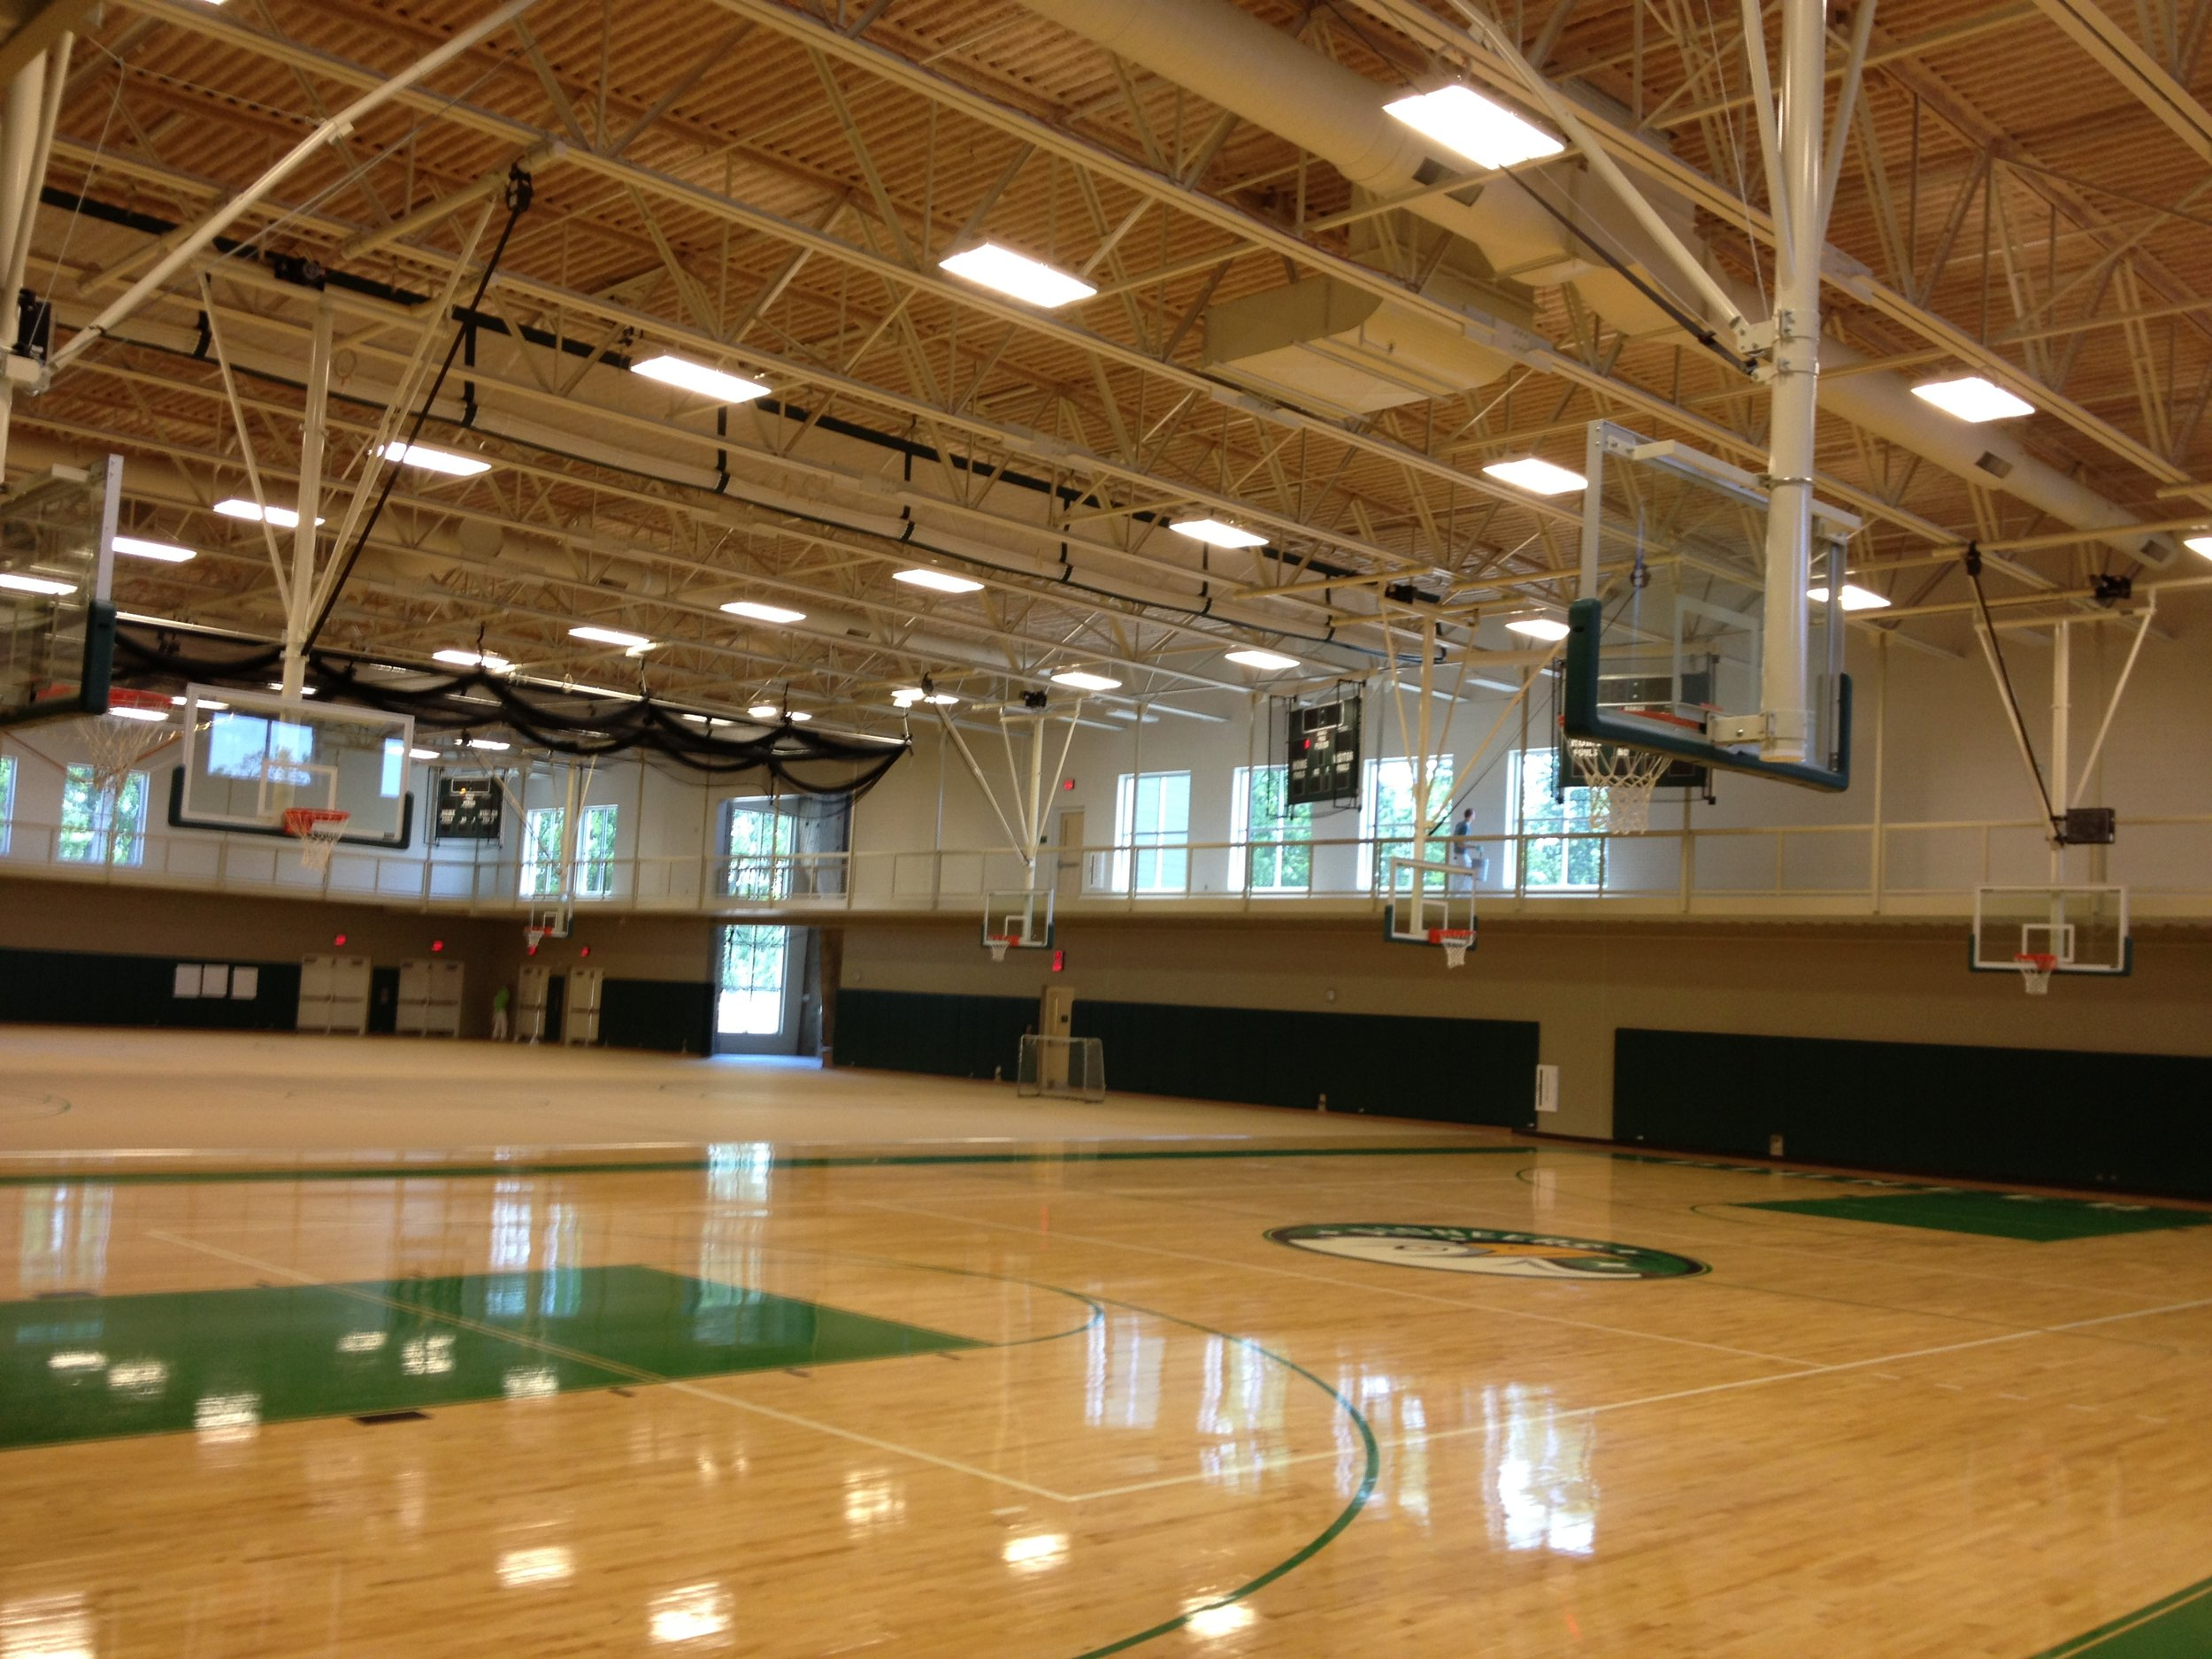 - Project Name: Eagle Hill SchoolPrime Contractor: Stanmar Inc.Architect: Stanmar Inc.Project Description: Delivered and installed Draper basketball backstops, gymnasium divider curtains and batting cages.